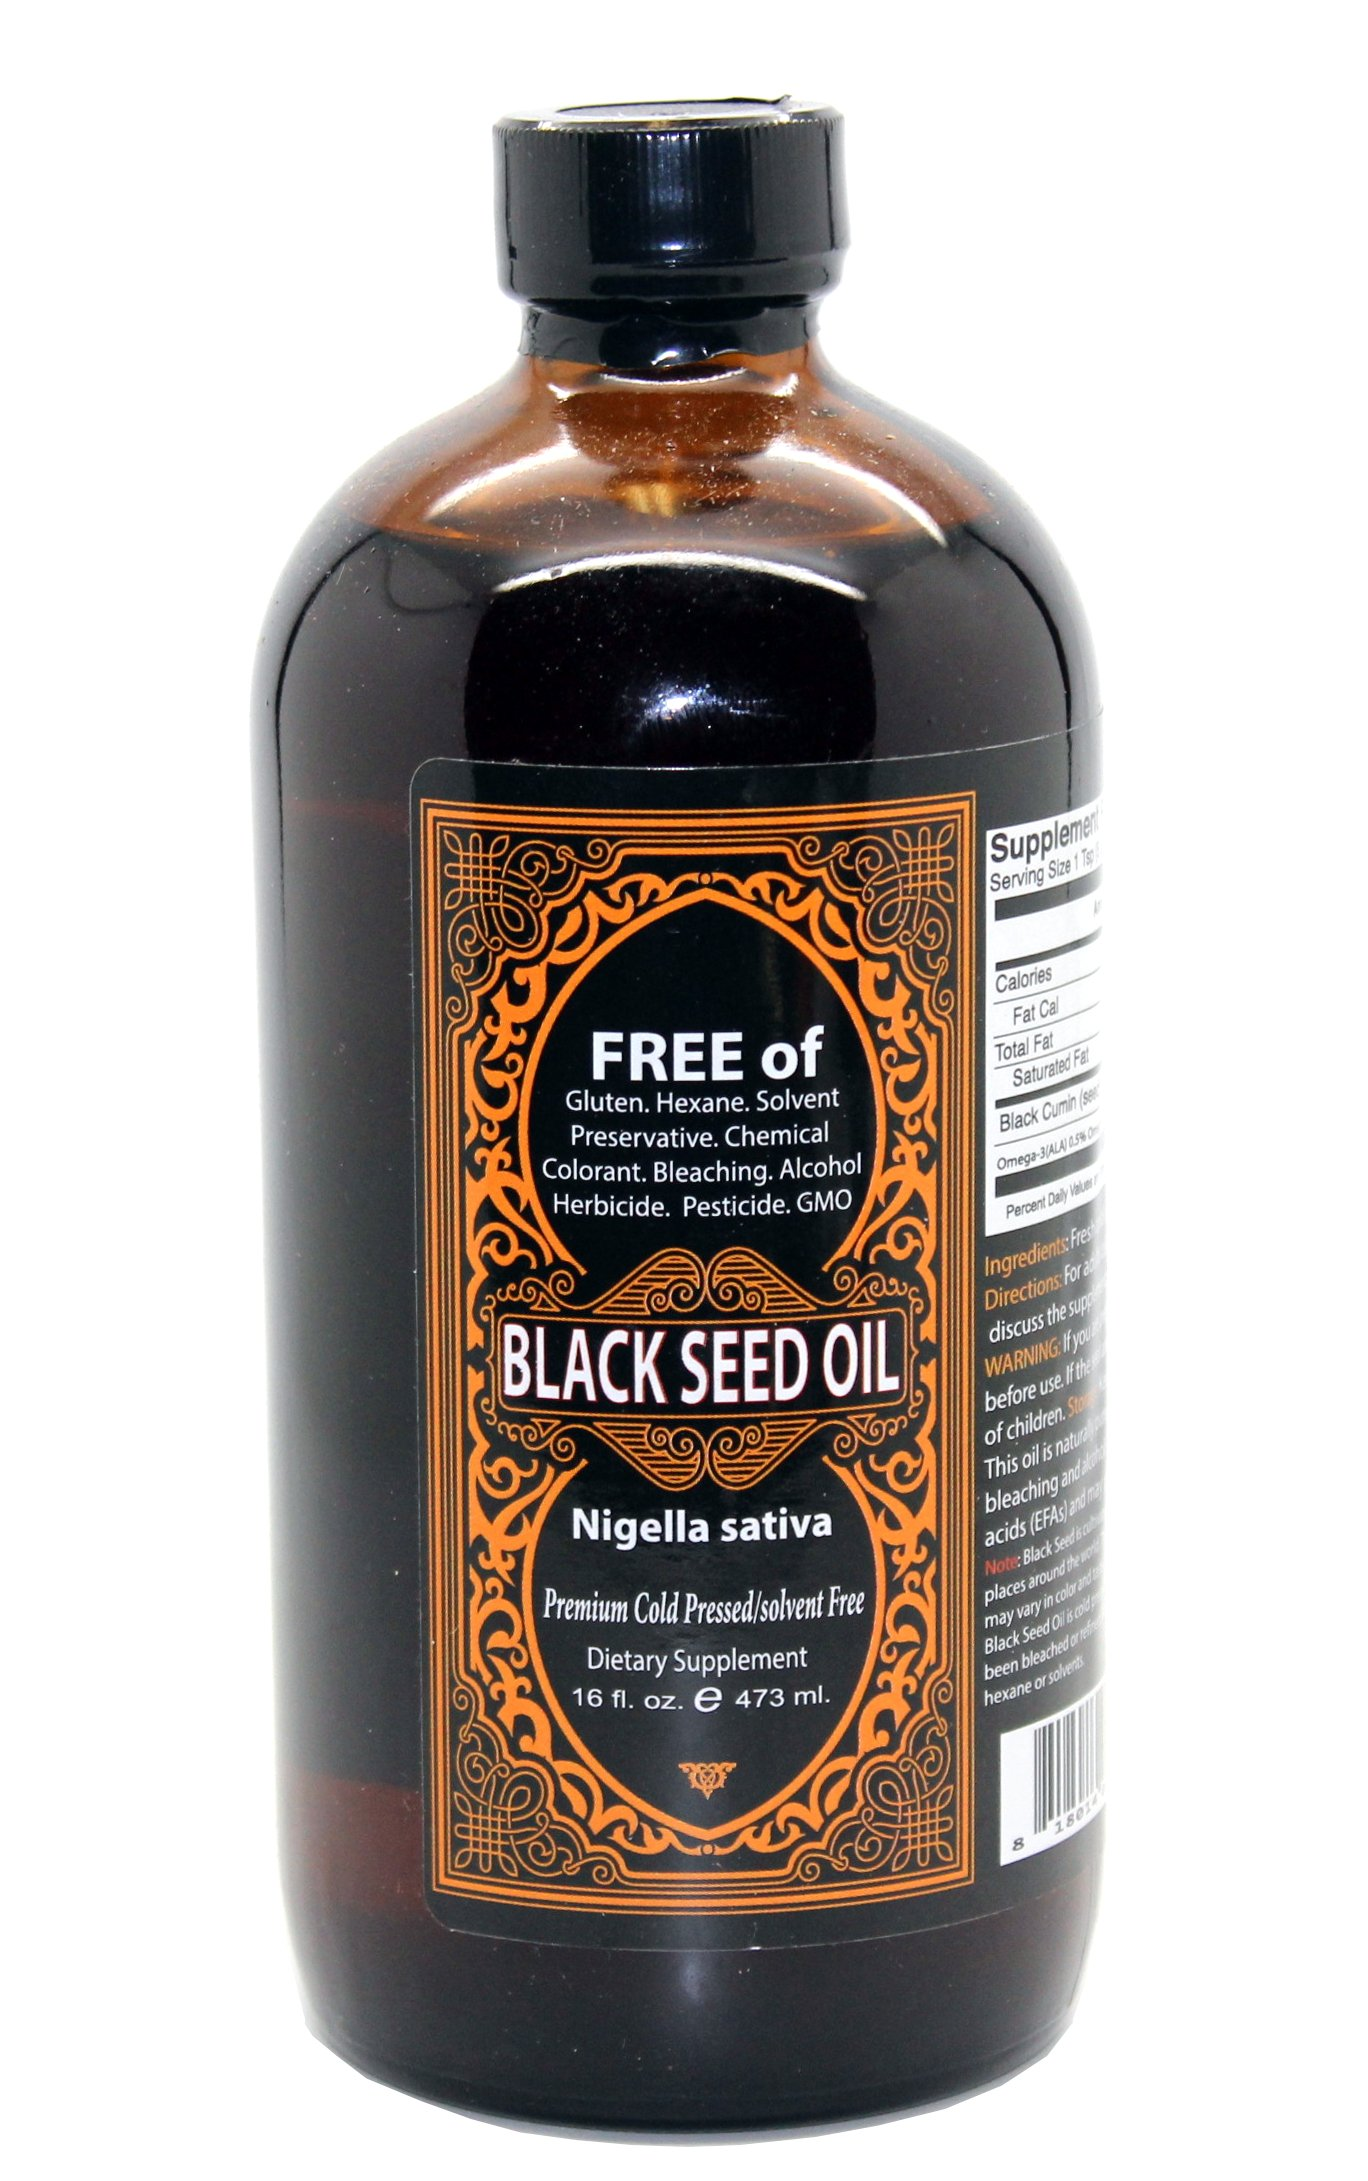 Our Earth's Secrets - Premium Black Seed Oil Cold Pressed - Nigella Sativa - Glass Bottle - 32 oz